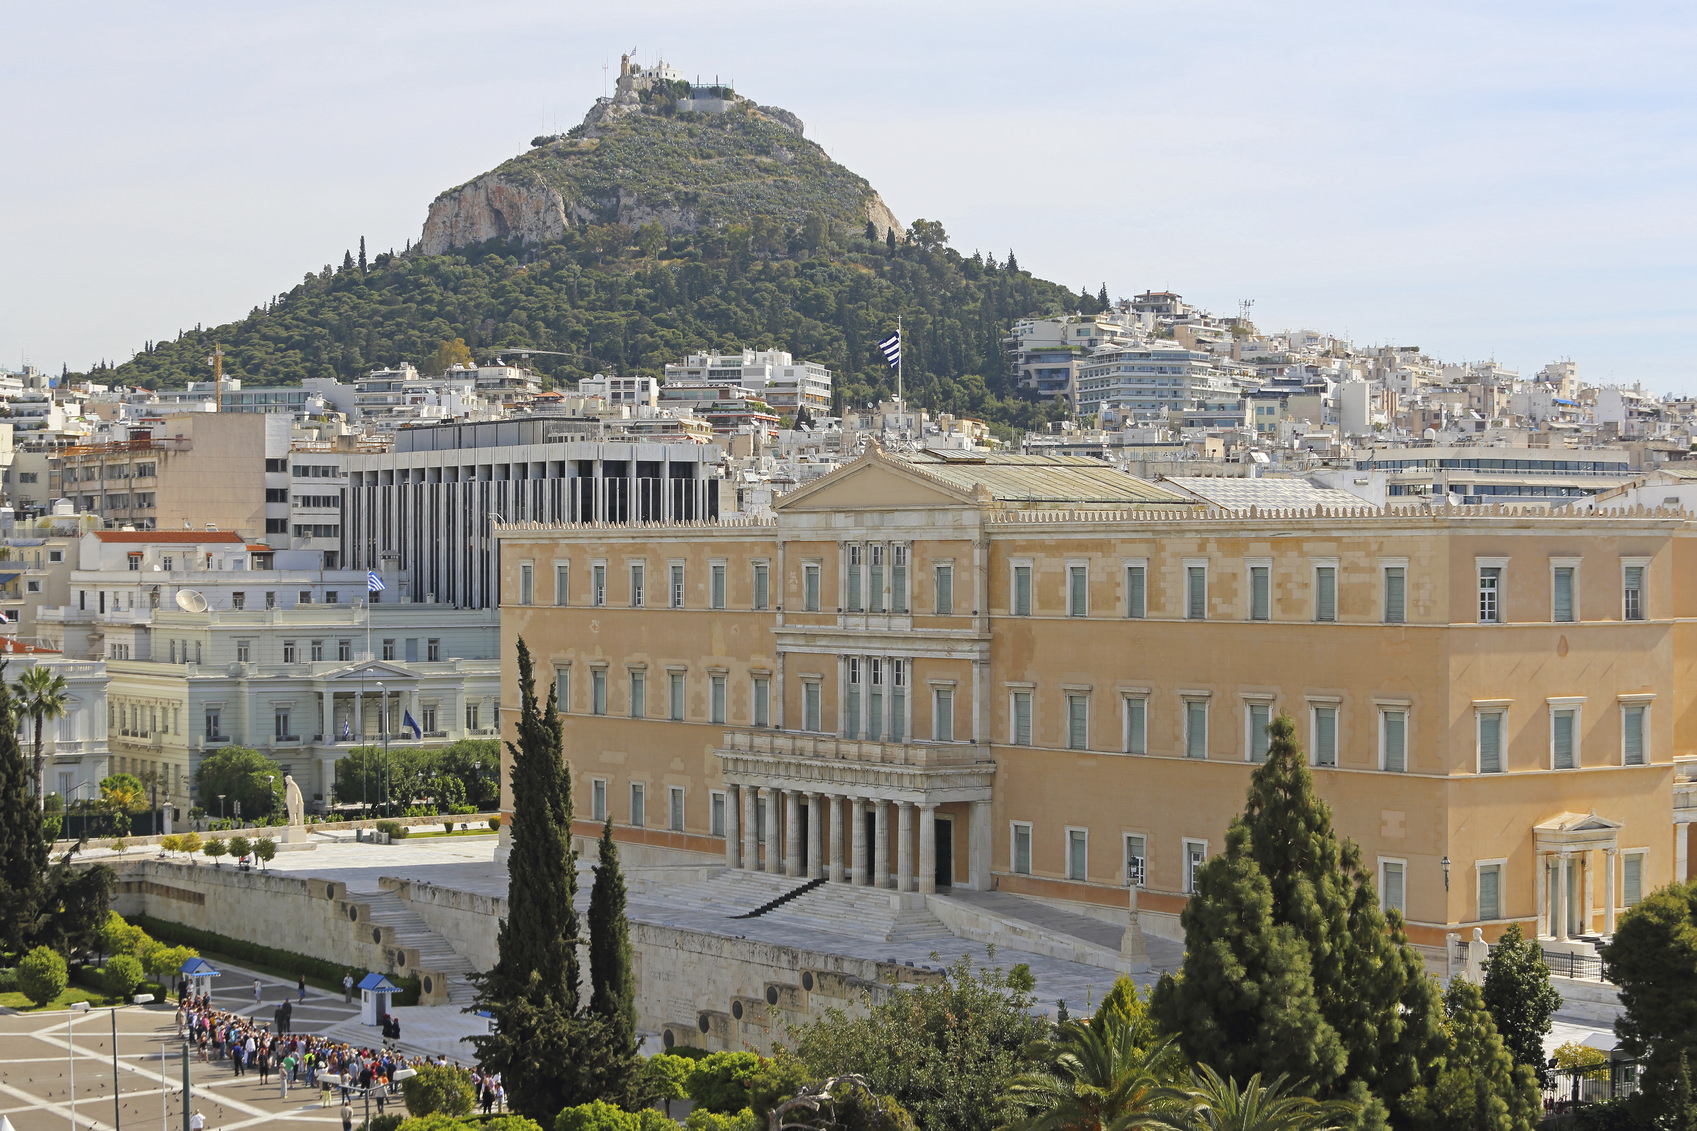 Athens, Greece - May 02, 2015: Tourists in front of Greek Parliament and Mount Lycabettus in Athens, Greece.